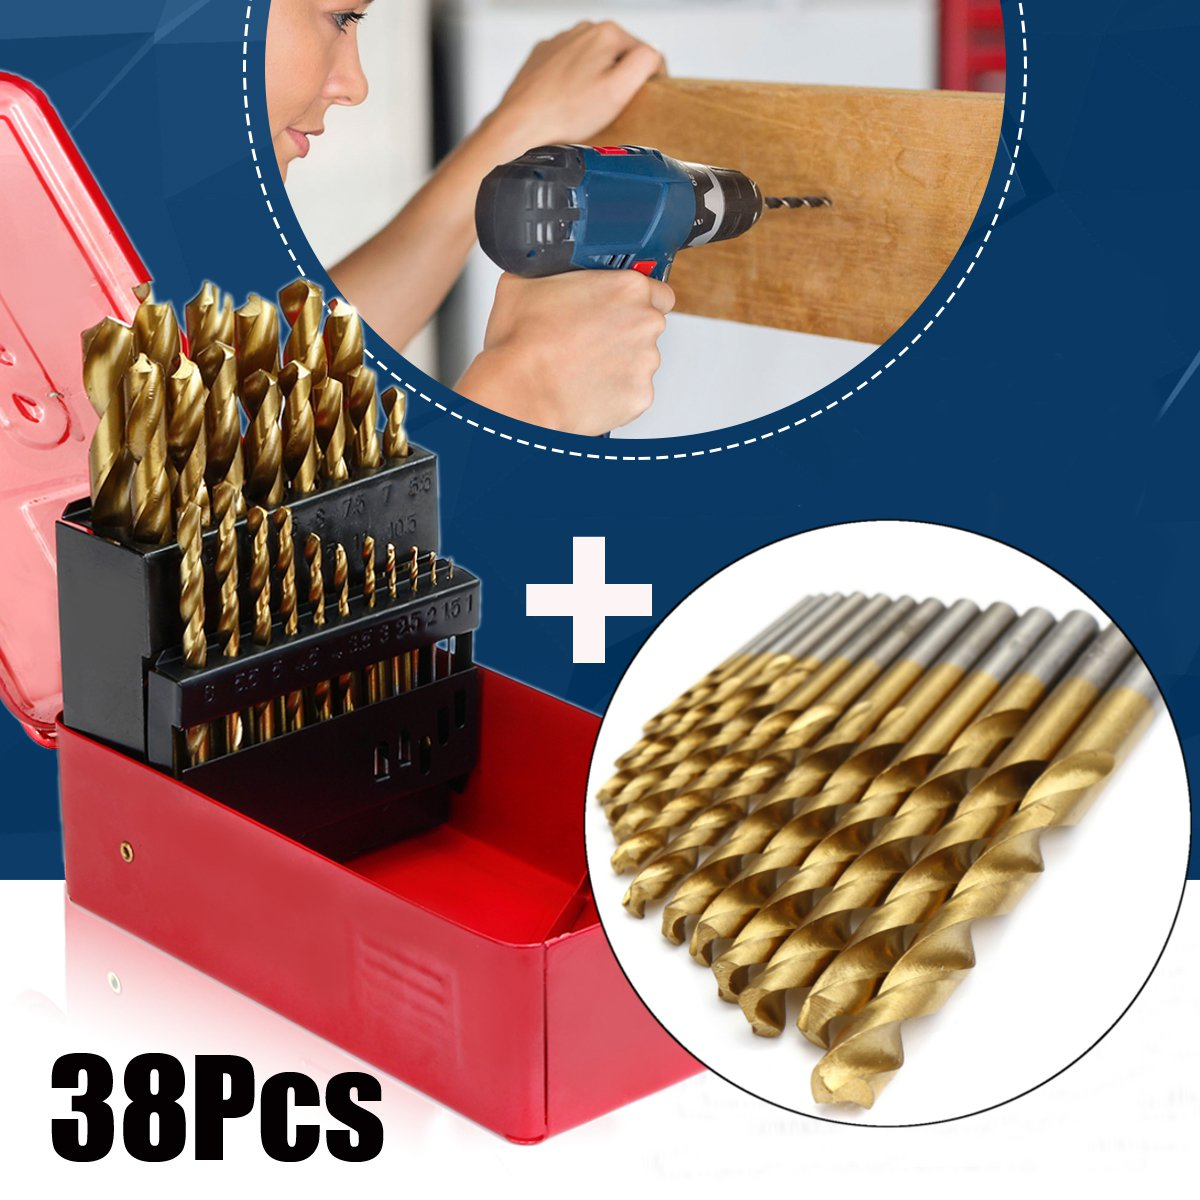 38Pcs Titanium Coated Drill Bits High Quality Power Tools HSS High Speed Steel Drill Bits Set Tool 1-13mm kcchstar the eye of god high quality 316 titanium steel necklaces golden blue